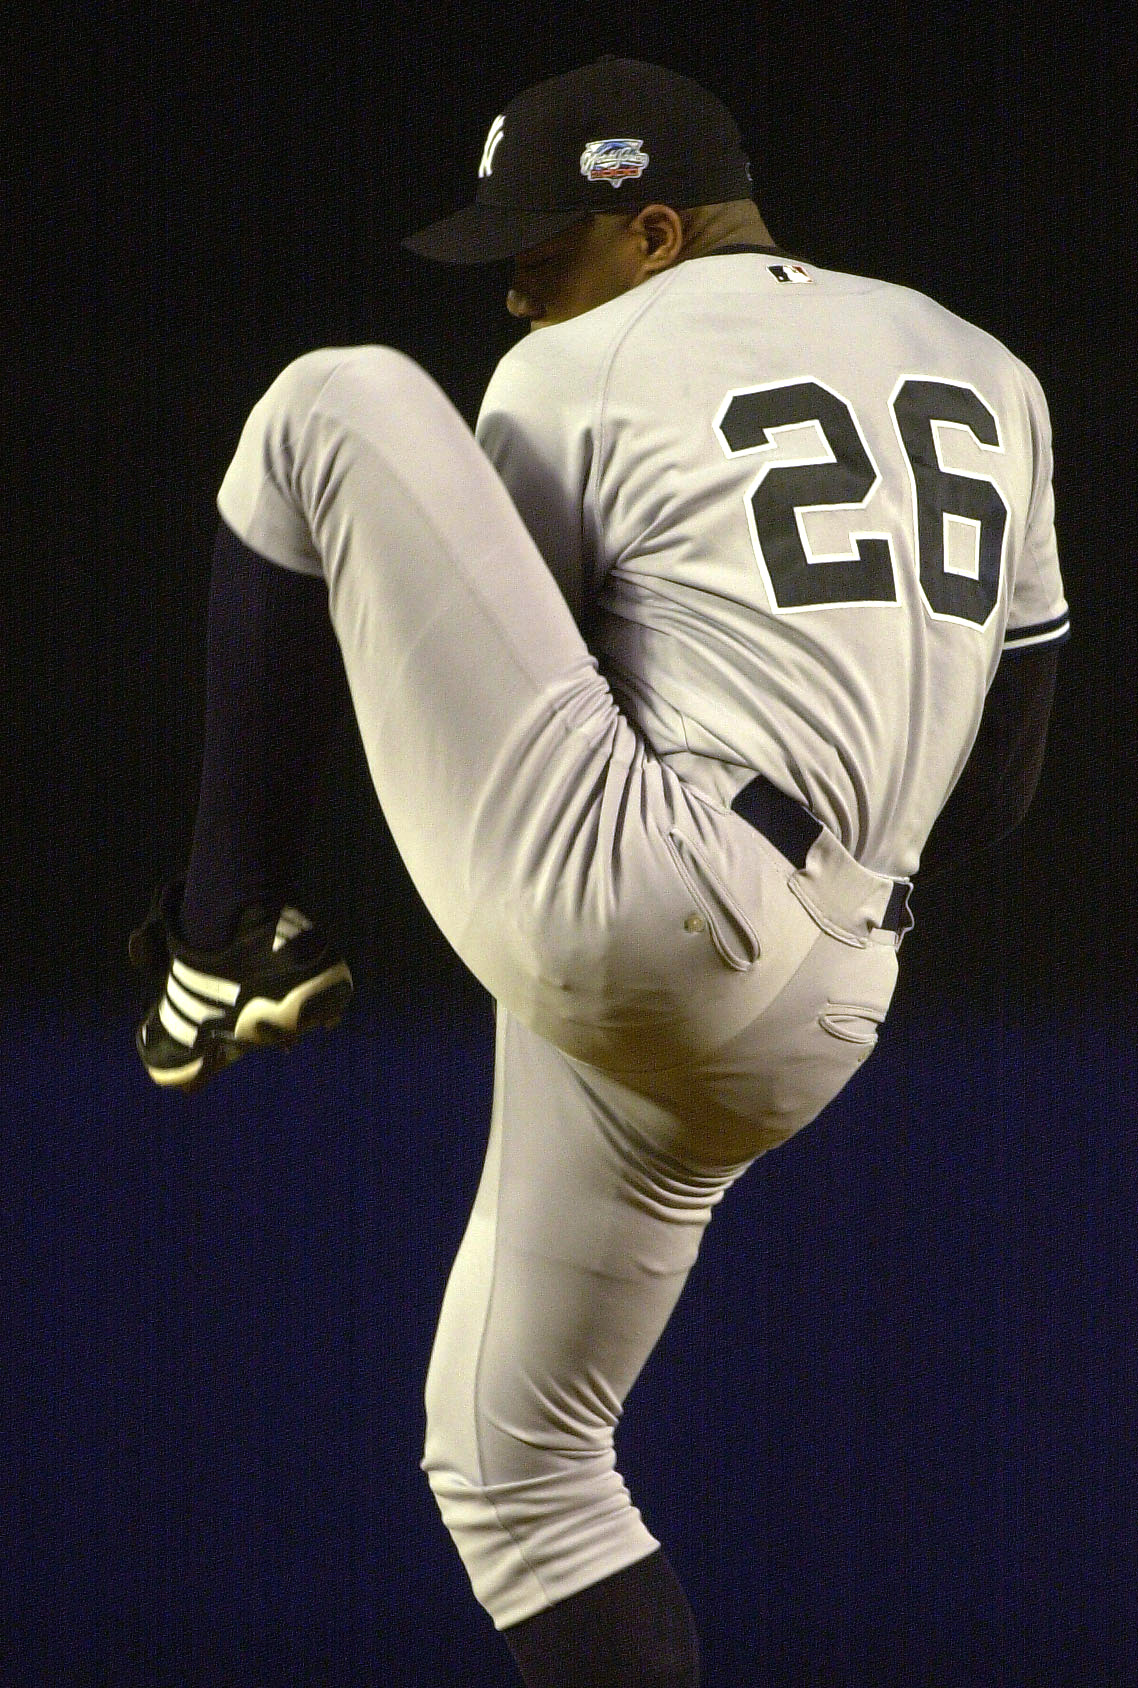 24 Oct 2000:  Starting pitcher #35 Orlando Hernandez of the New York Yankees throws a pitch against the New York Mets during Game 3 of the MLB World Series at Shea Stadium in Flushing, New York. <POOL IMAGE><DIGITAL IMAGE> Mandatory Credit: Allsport USA/A